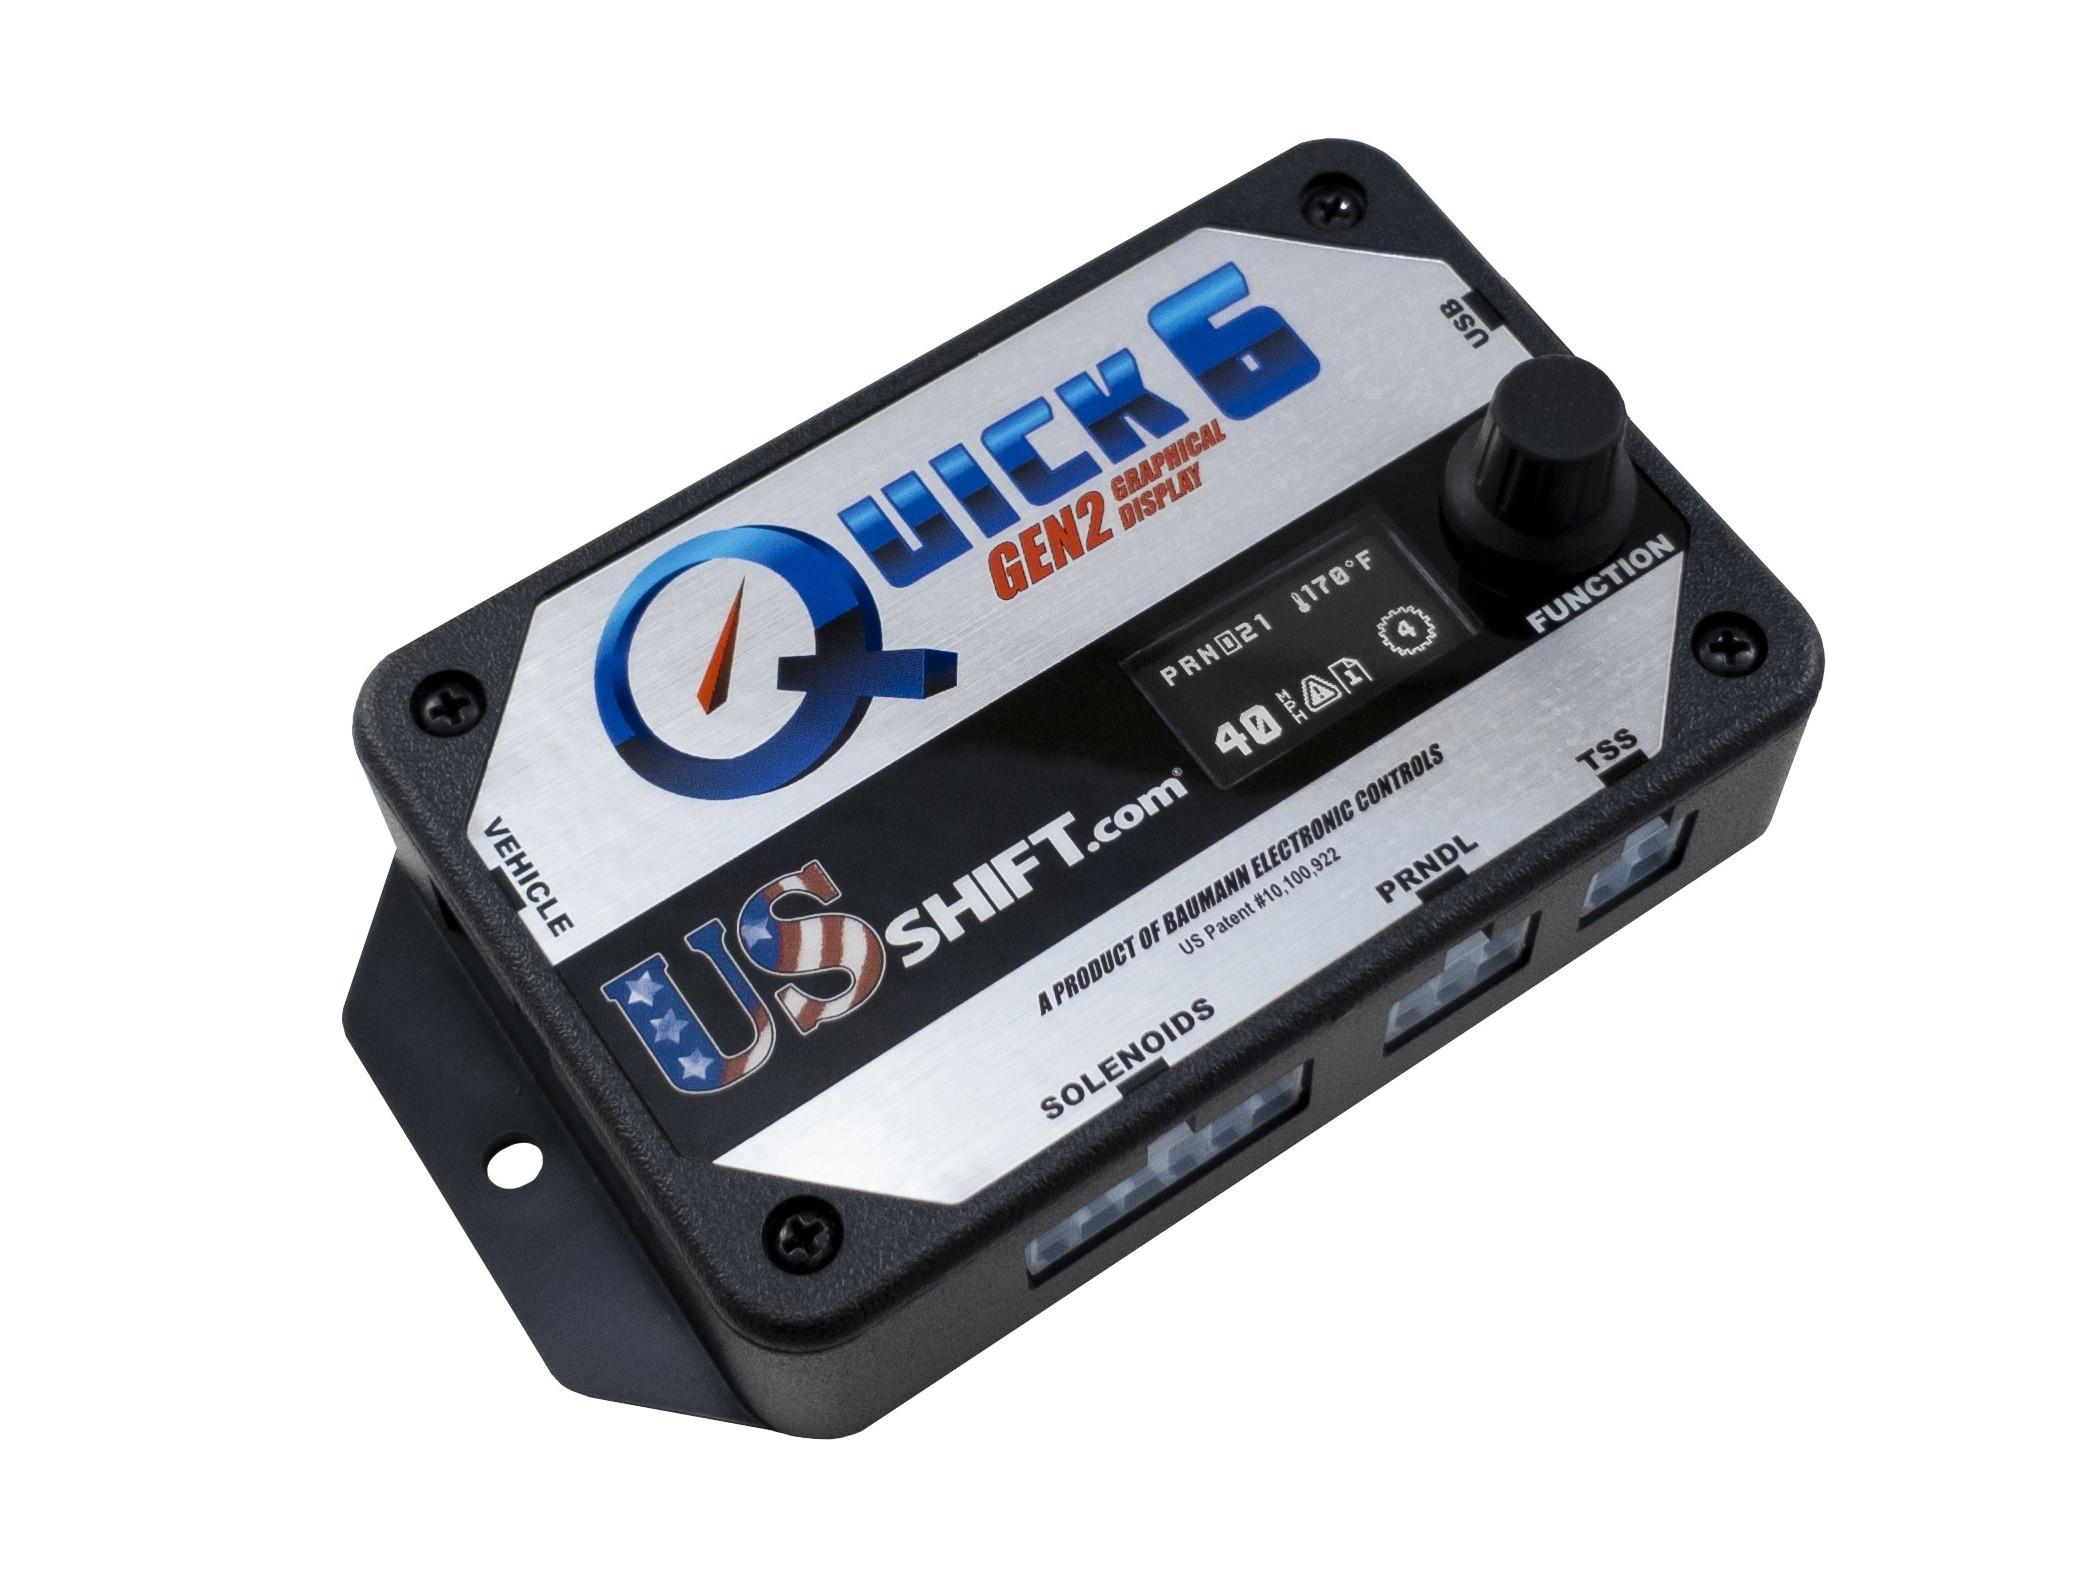 quick 6 stand alone transmission controlthe quick 6 controller